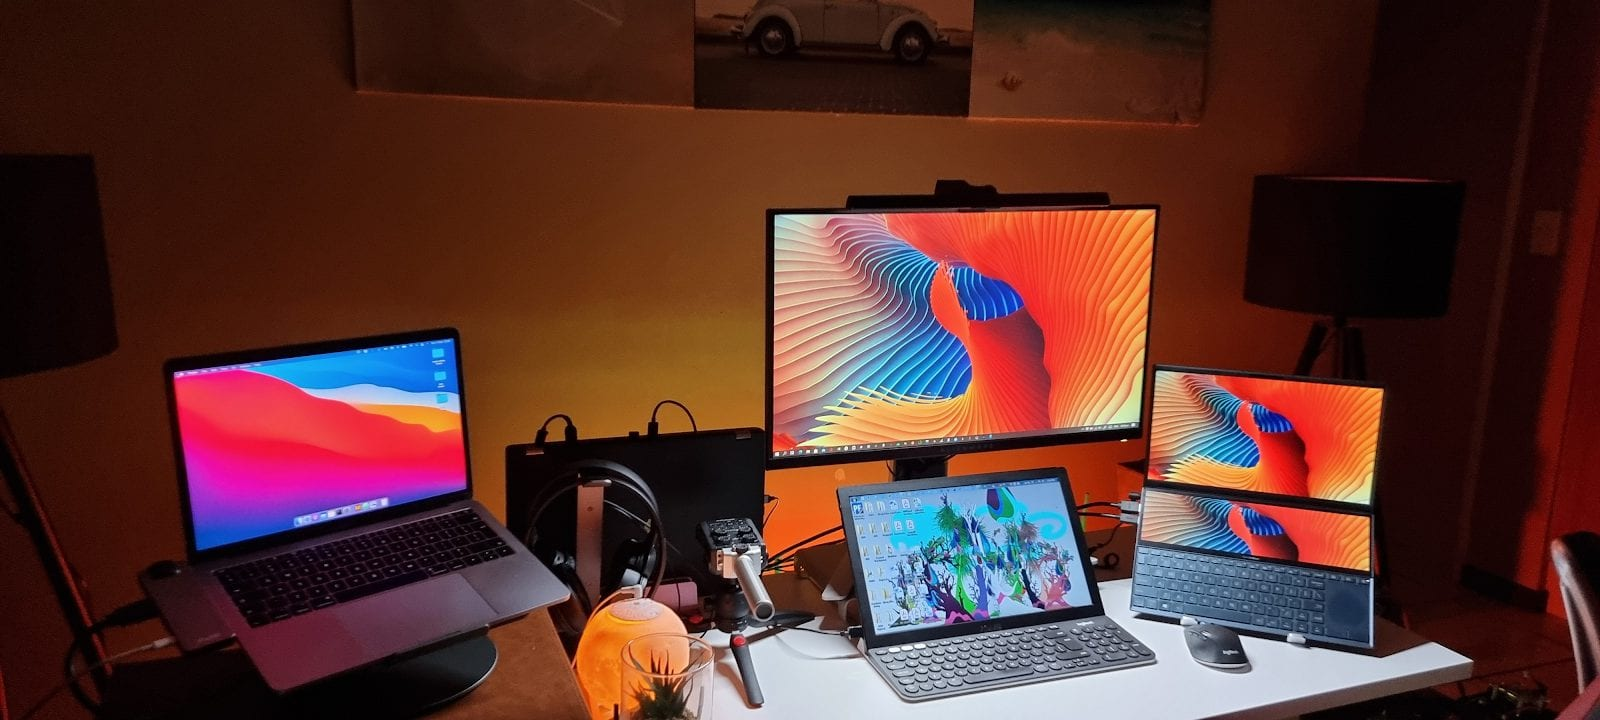 How A 6 Monitor Setup Can Improve Your Workflow